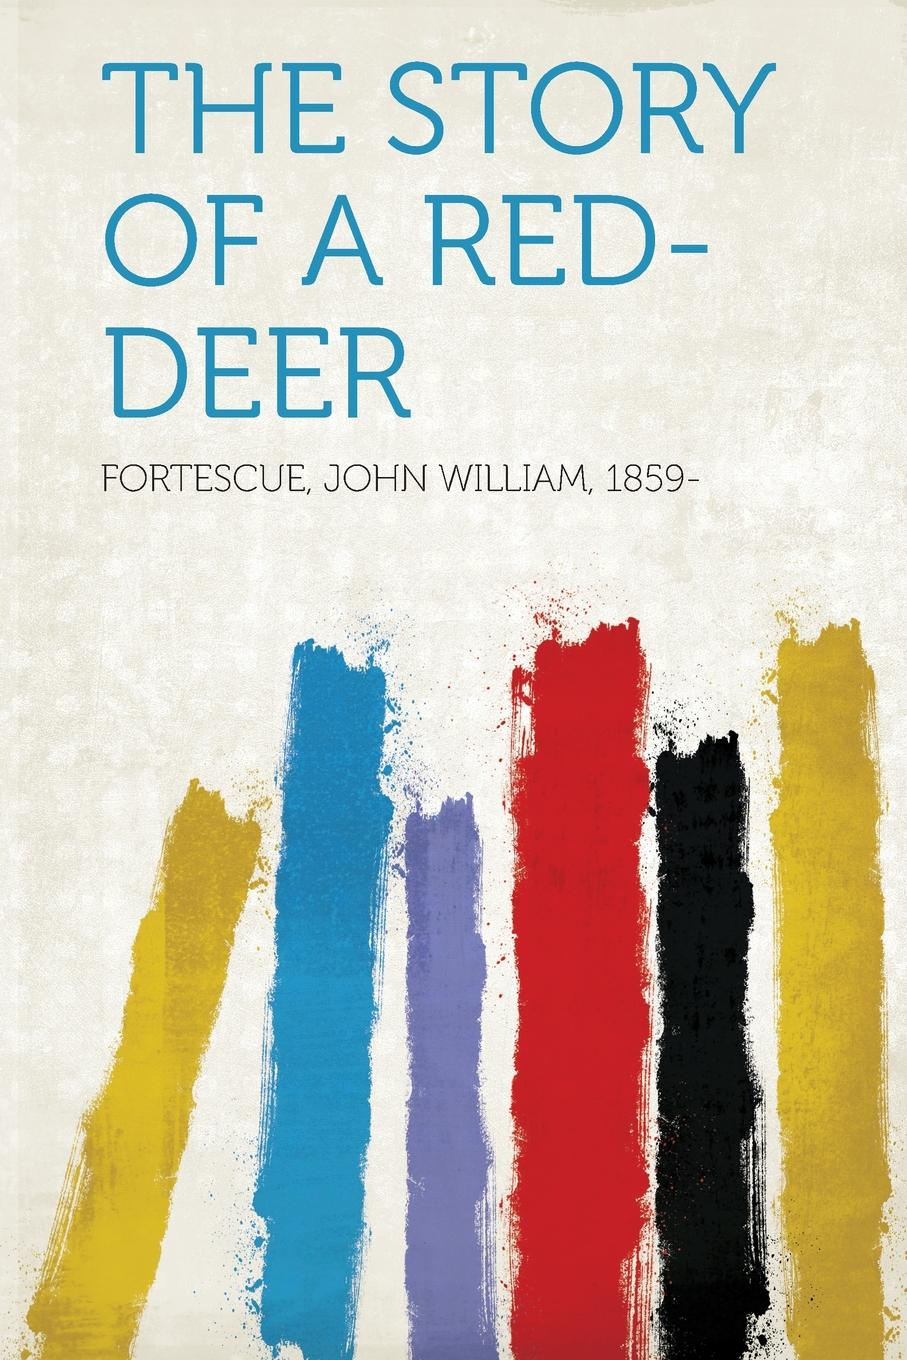 Fortescue John William 1859- The Story of a Red-Deer fortescue john william the story of a red deer